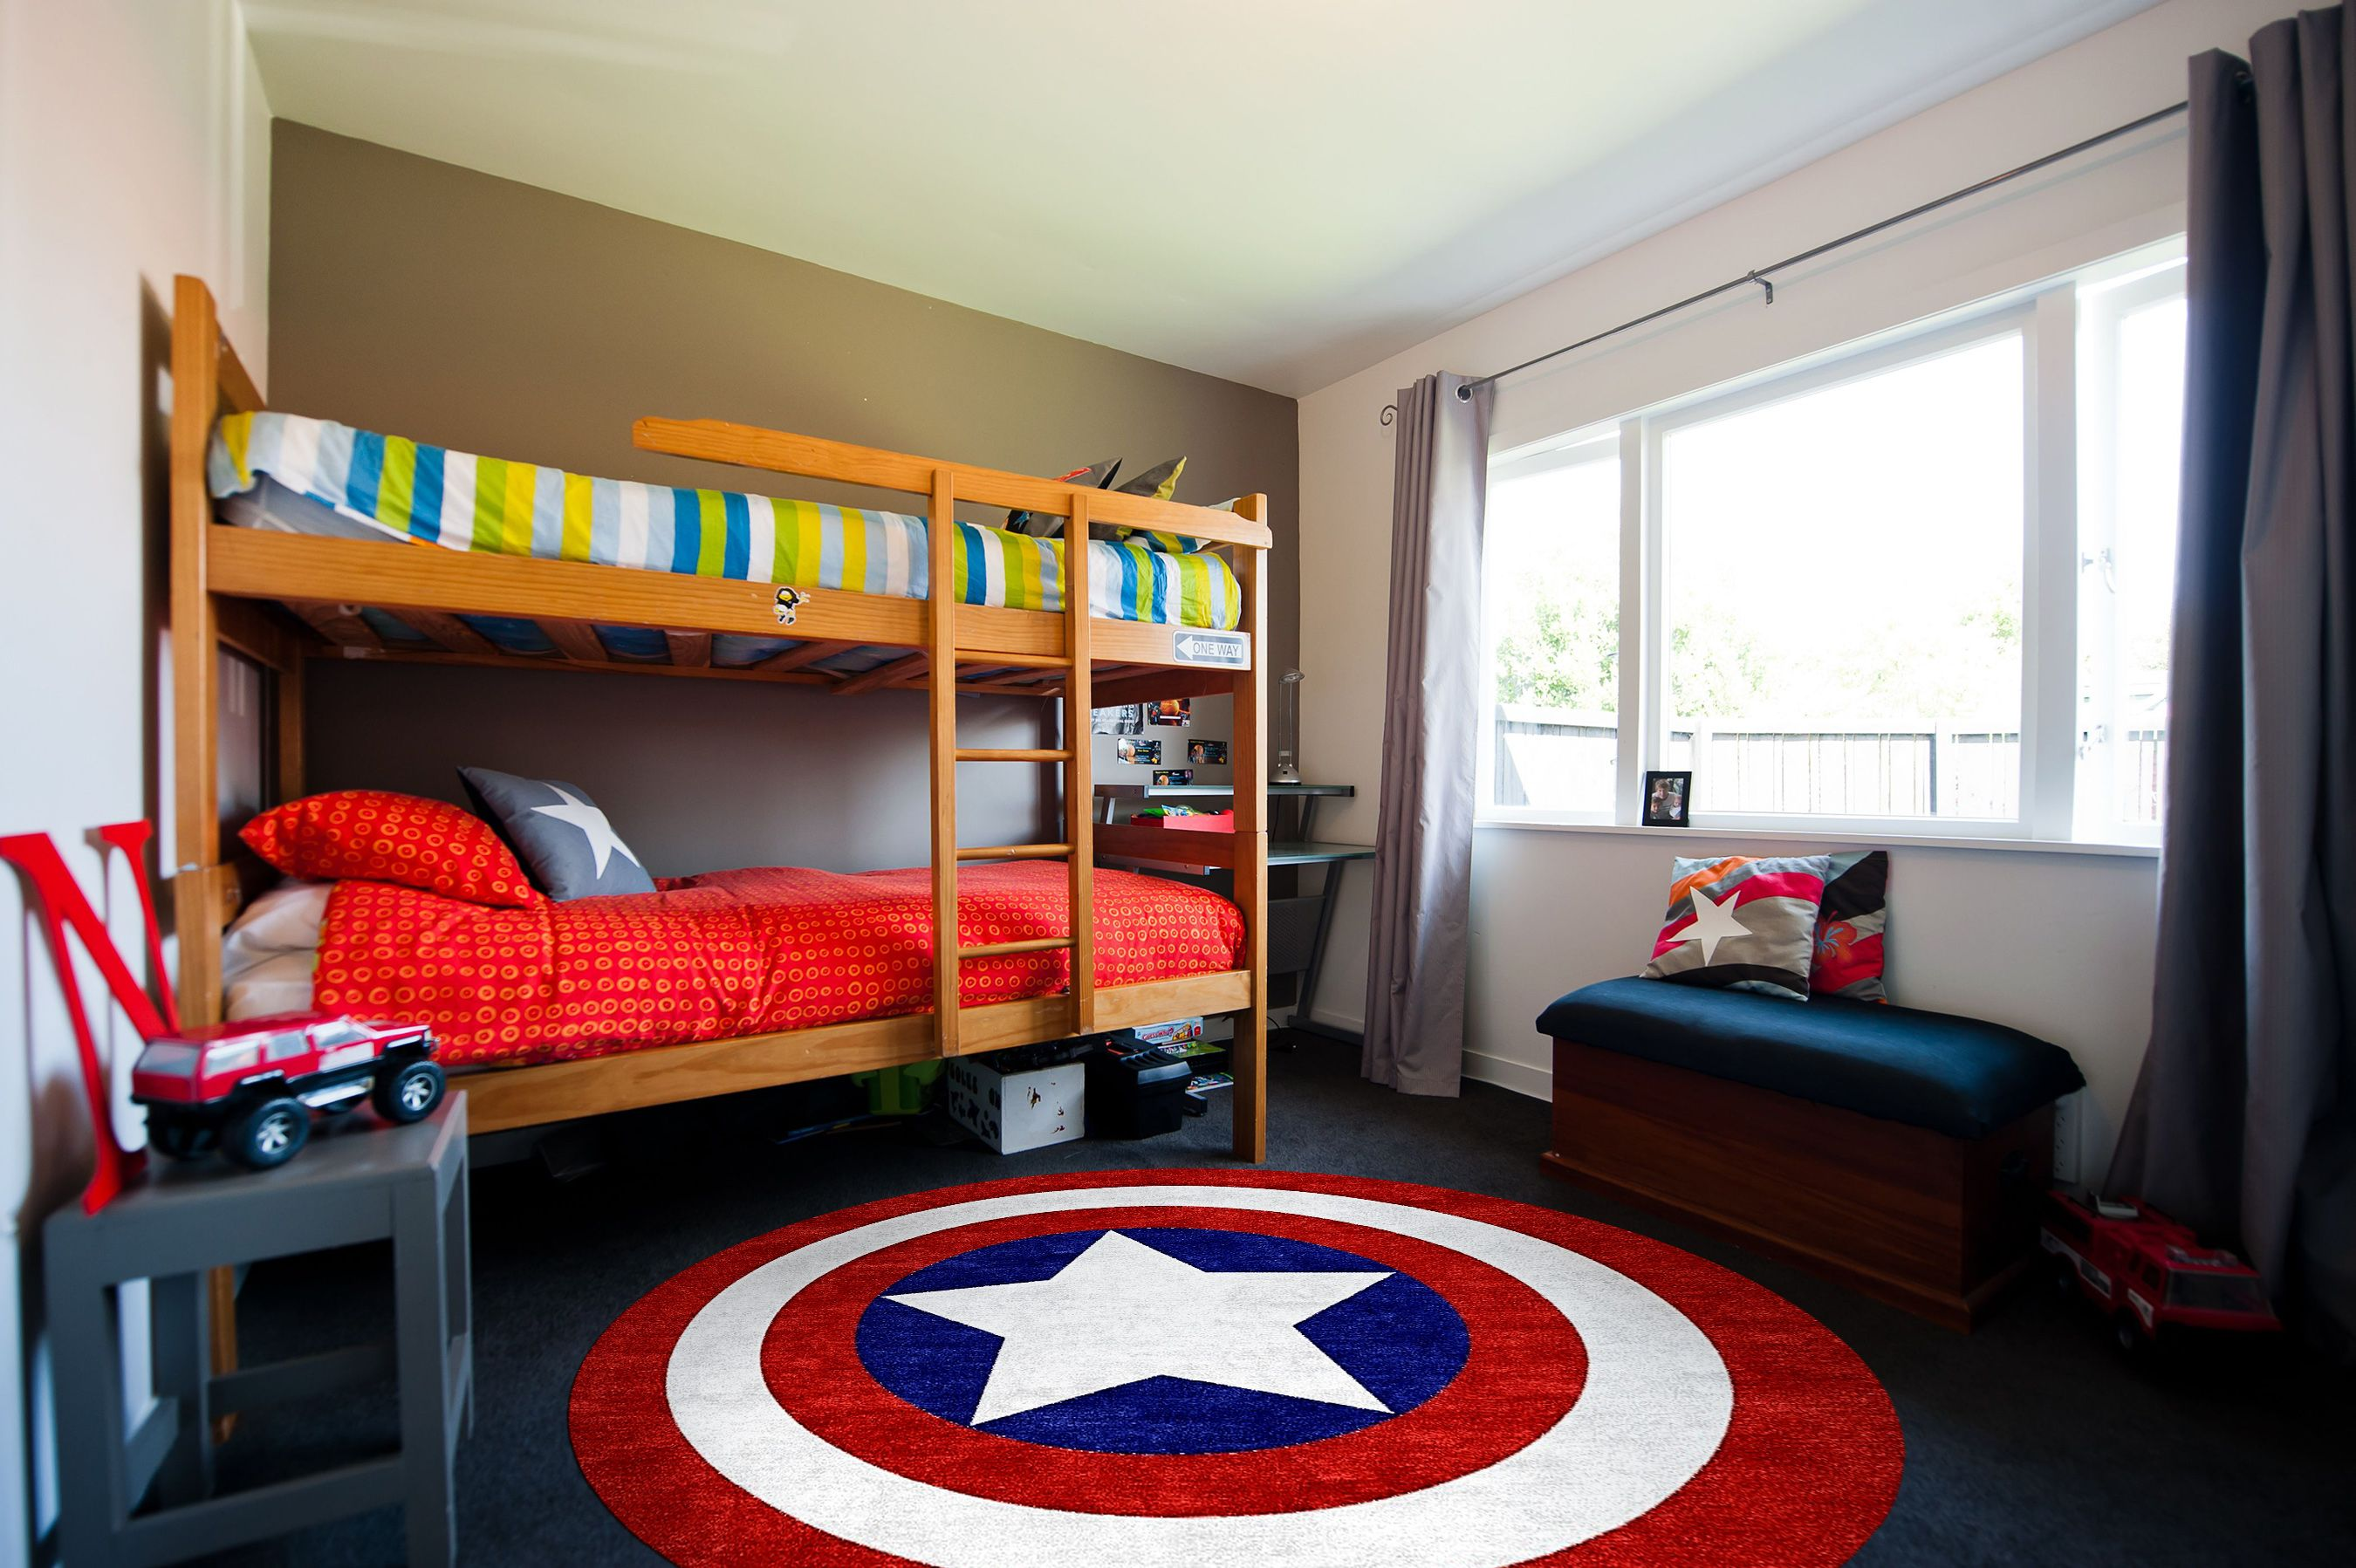 best 25 superhero rug ideas on pinterest superhero room boys superhero bedroom and superhero. Black Bedroom Furniture Sets. Home Design Ideas